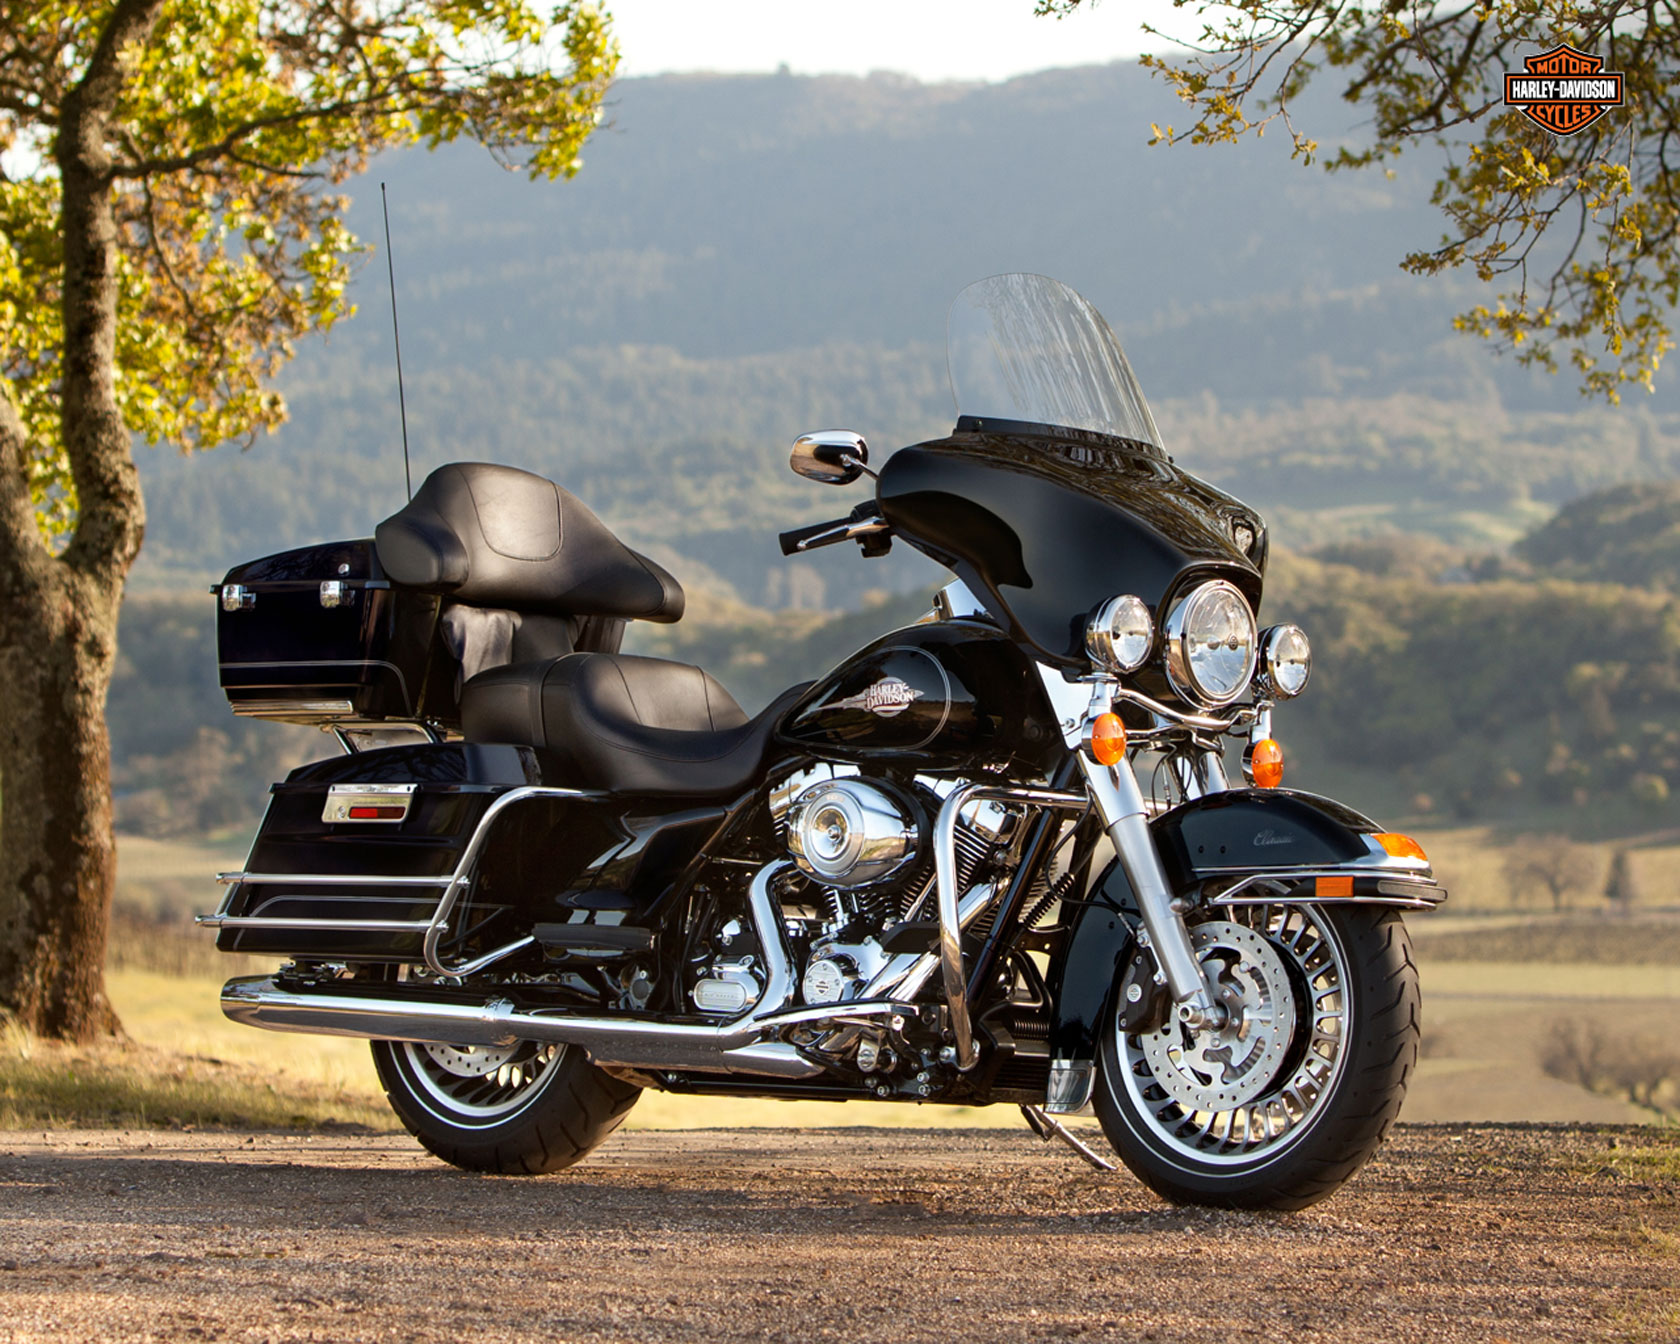 Best Motorcycle Jacket >> 2013 Harley-Davidson FLHTC Electra Glide Classic Review